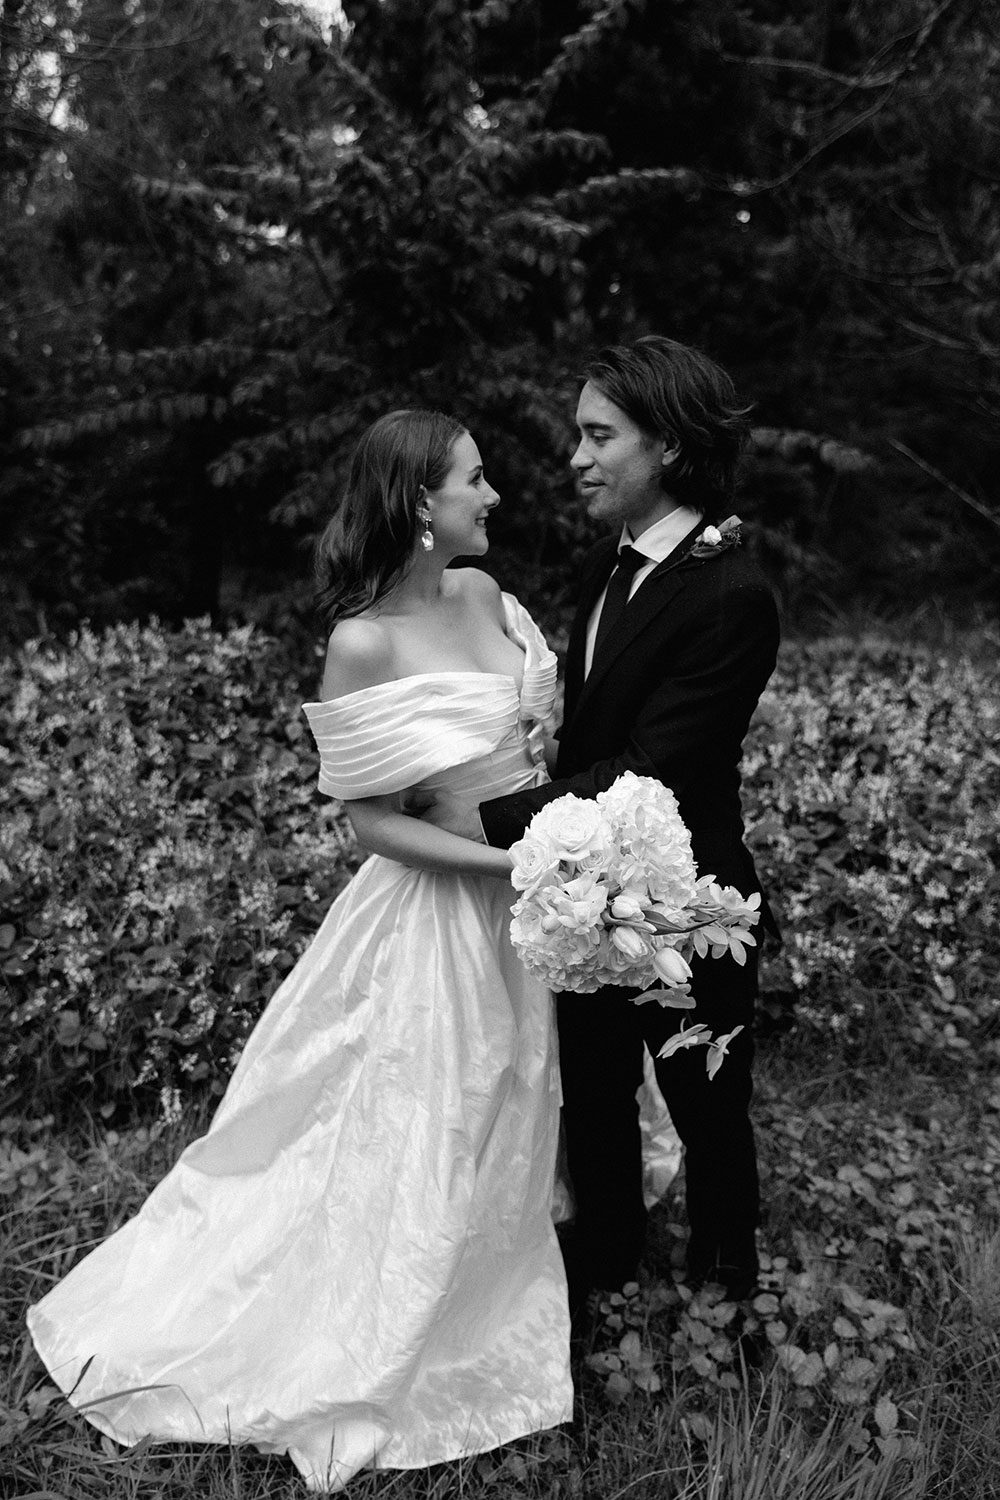 Bride wearing bespoke off shoulder bodice made with silk dupion and long train by NZ wedding dress maker Vinka Designs - black and white kissing groom under umbrella